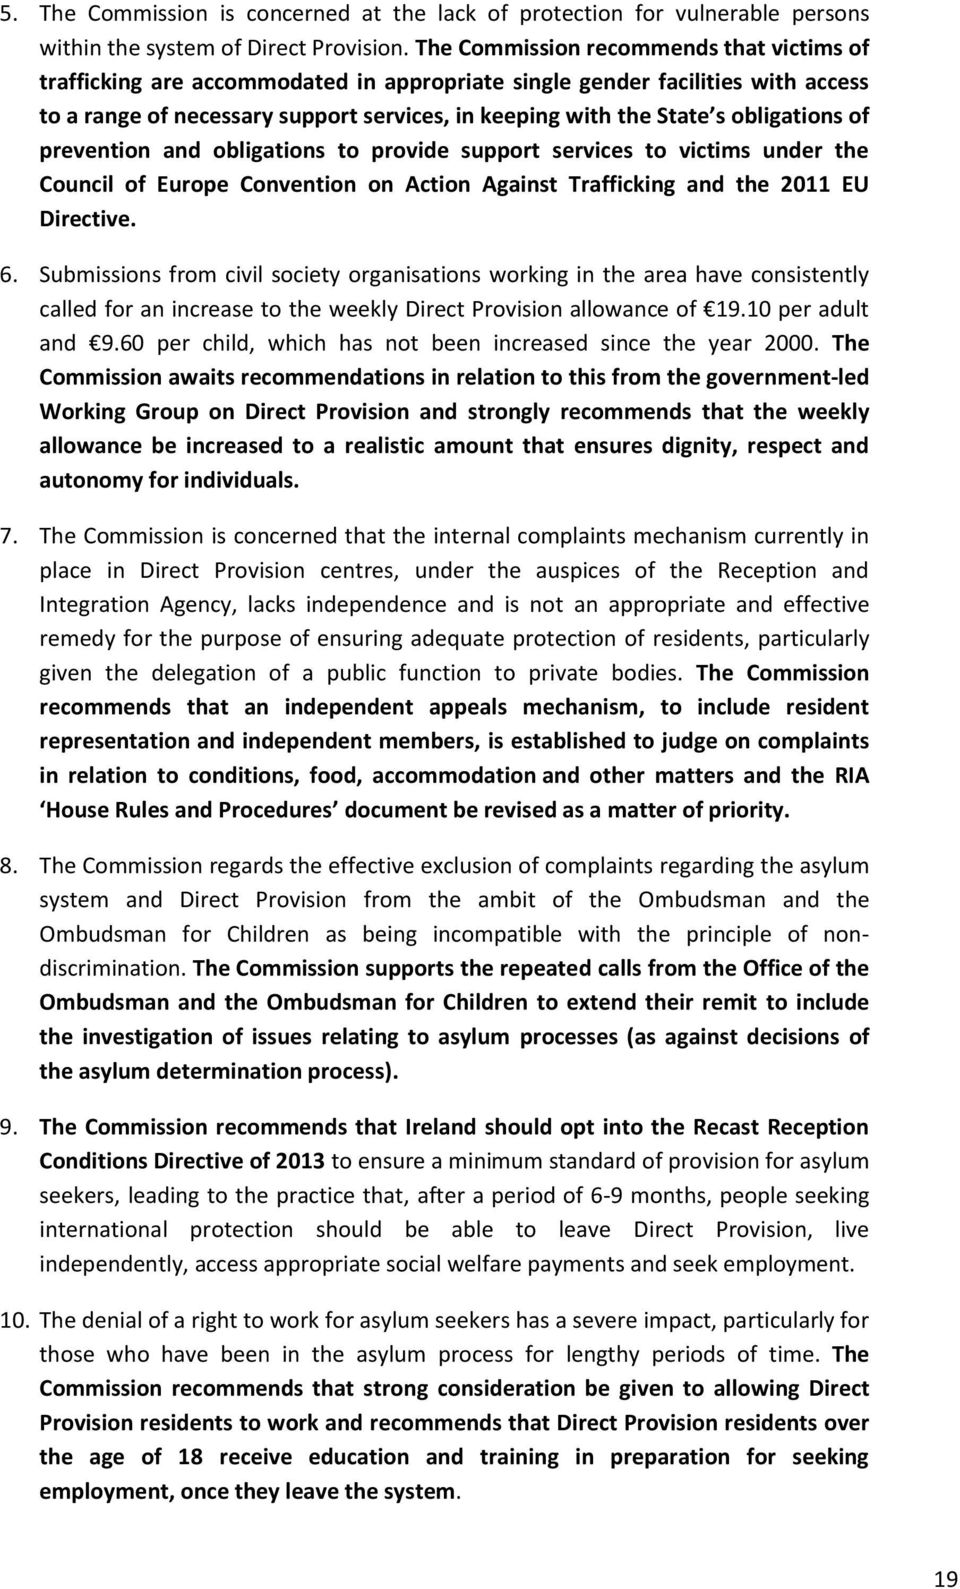 obligations of prevention and obligations to provide support services to victims under the Council of Europe Convention on Action Against Trafficking and the 2011 EU Directive. 6.